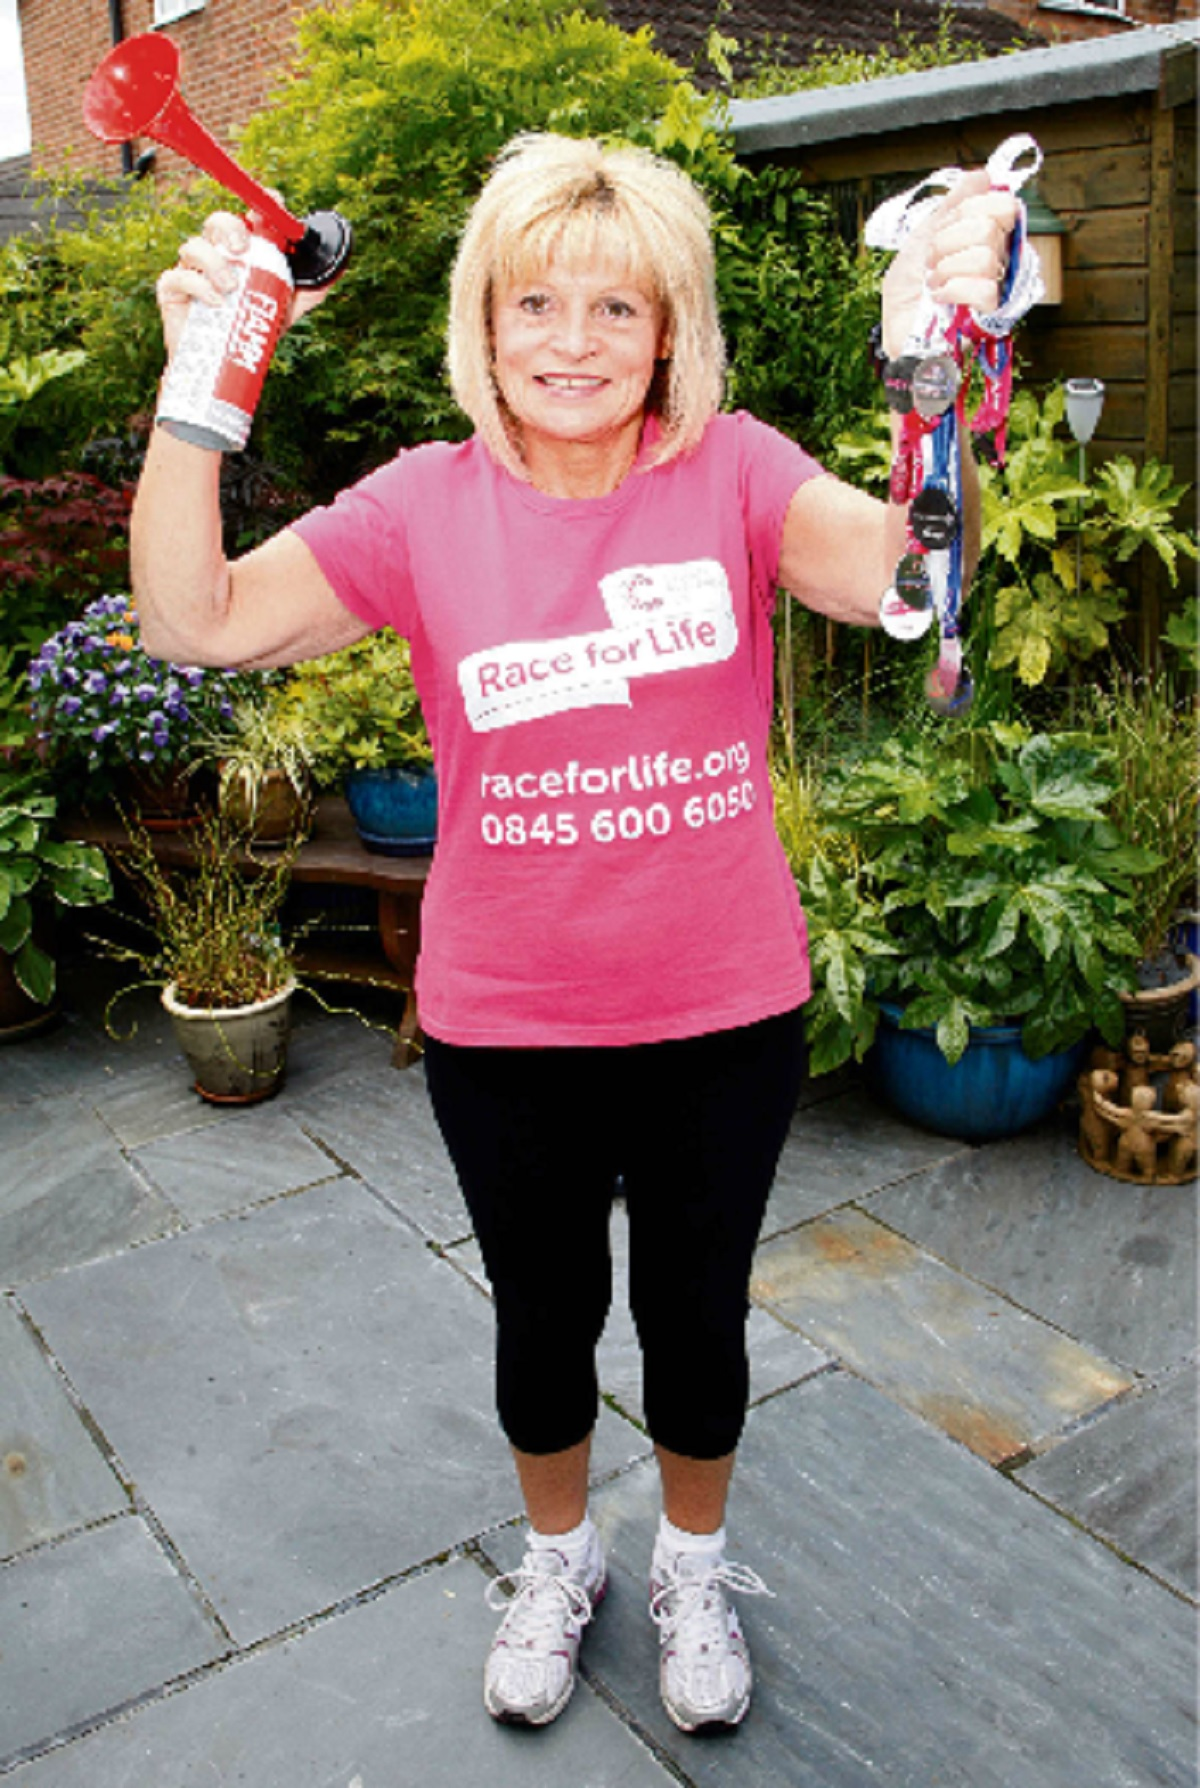 Bromsgrove breast cancer survivor Lorrayne Edwards is taking part in her ninth Race for Life event.  Buy this photo BCR241402_01